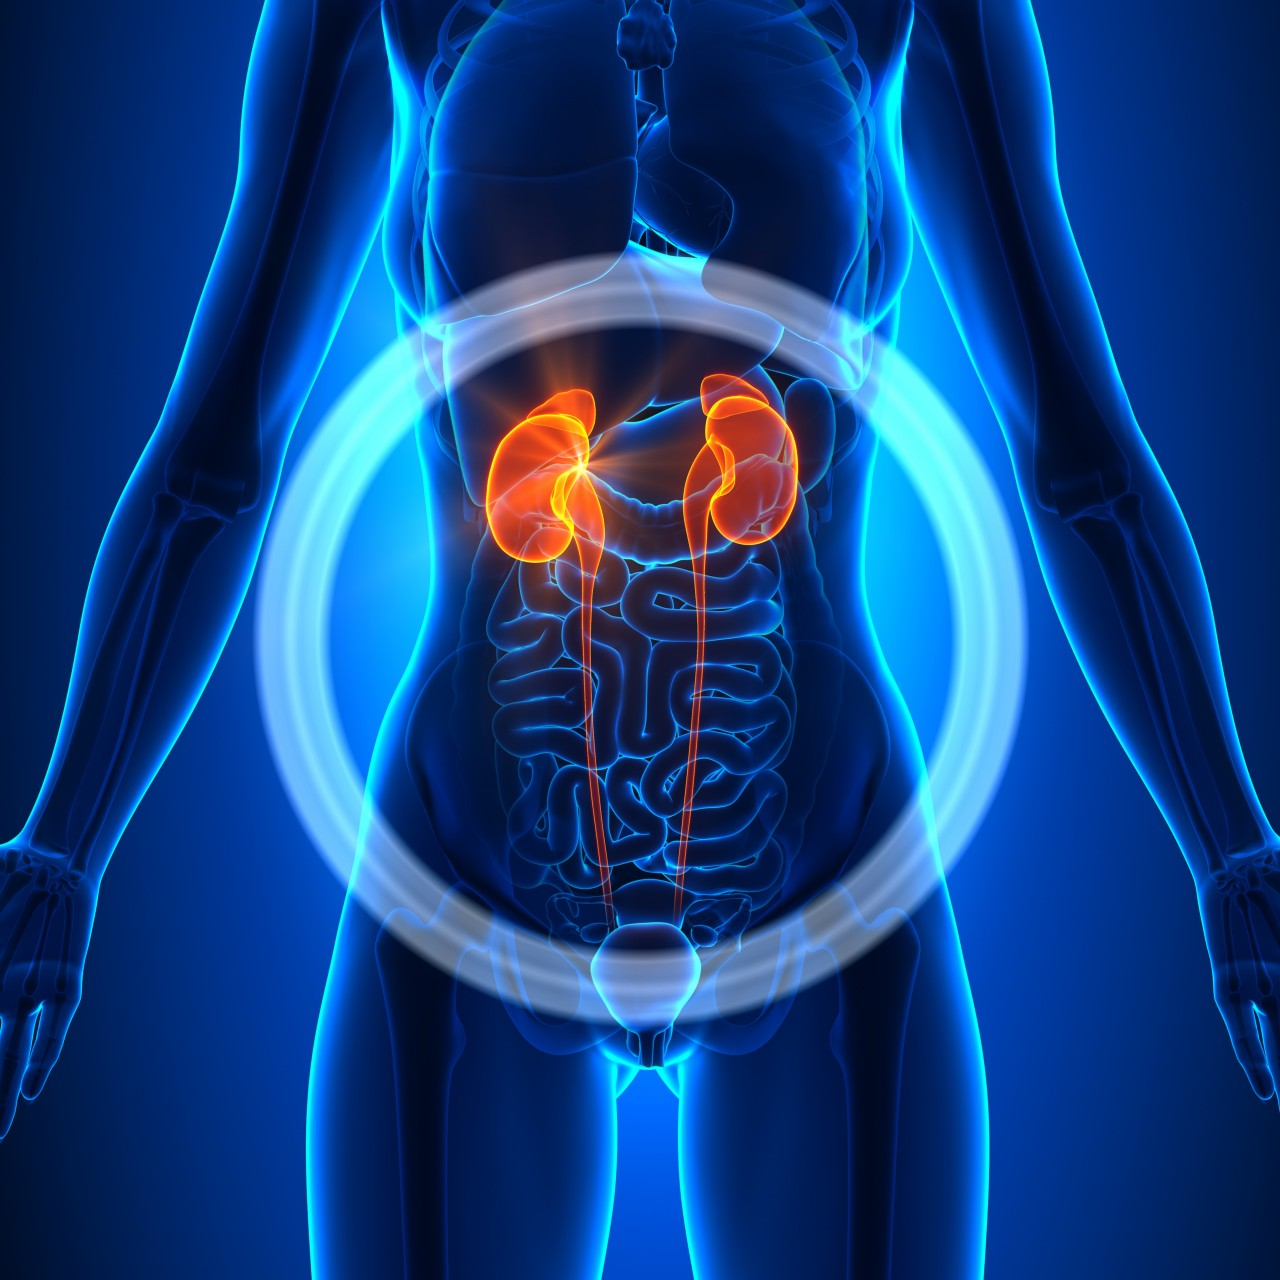 Patiromer Treatment Offers Long-Term Benefits for Kidney Disease Patients With Hyperkalemia